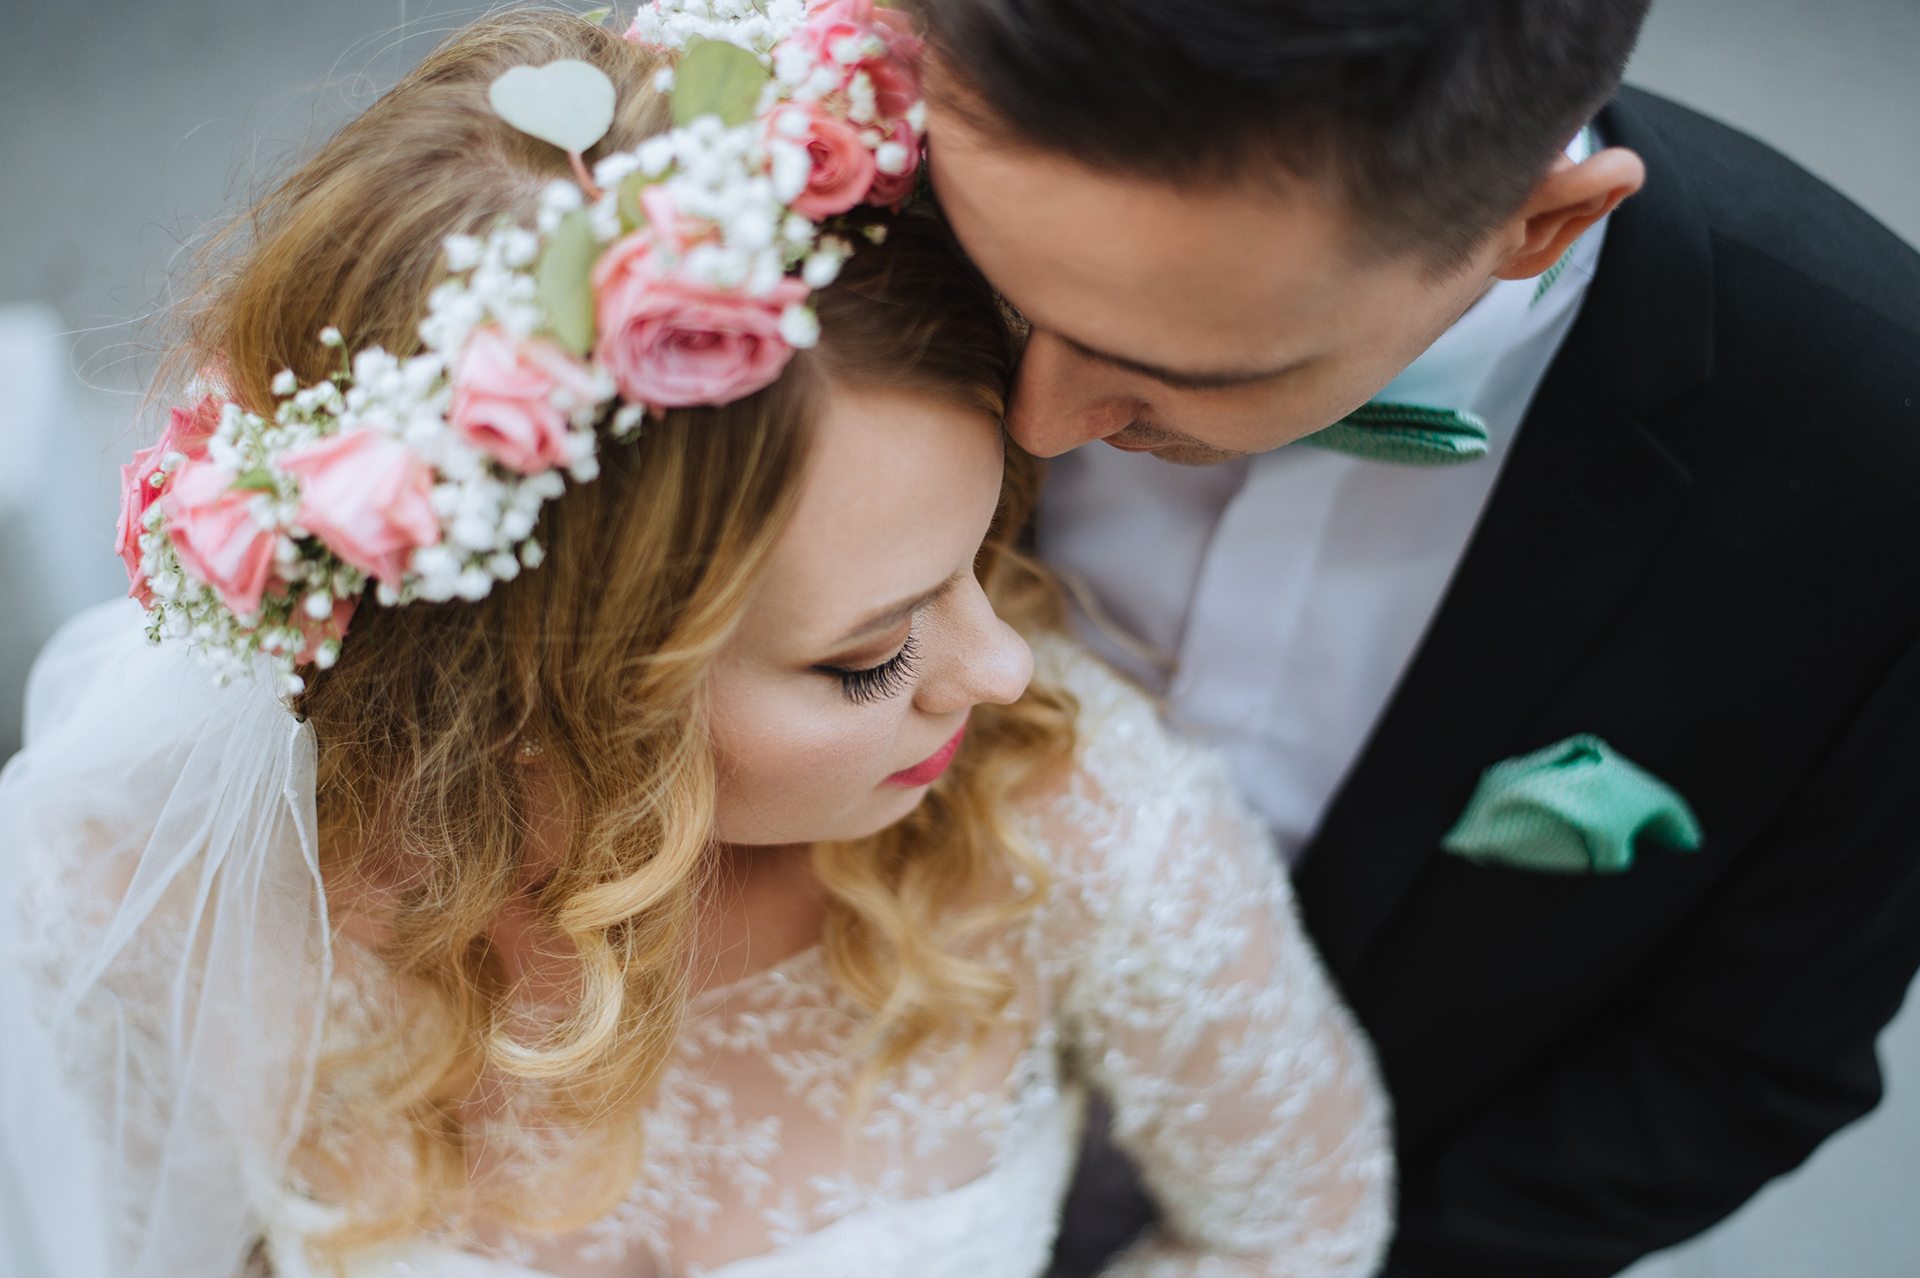 vintage-inspired-wedding-pink-roses-crown-peonies-bouquet-lace-and-tulle-dress (2)